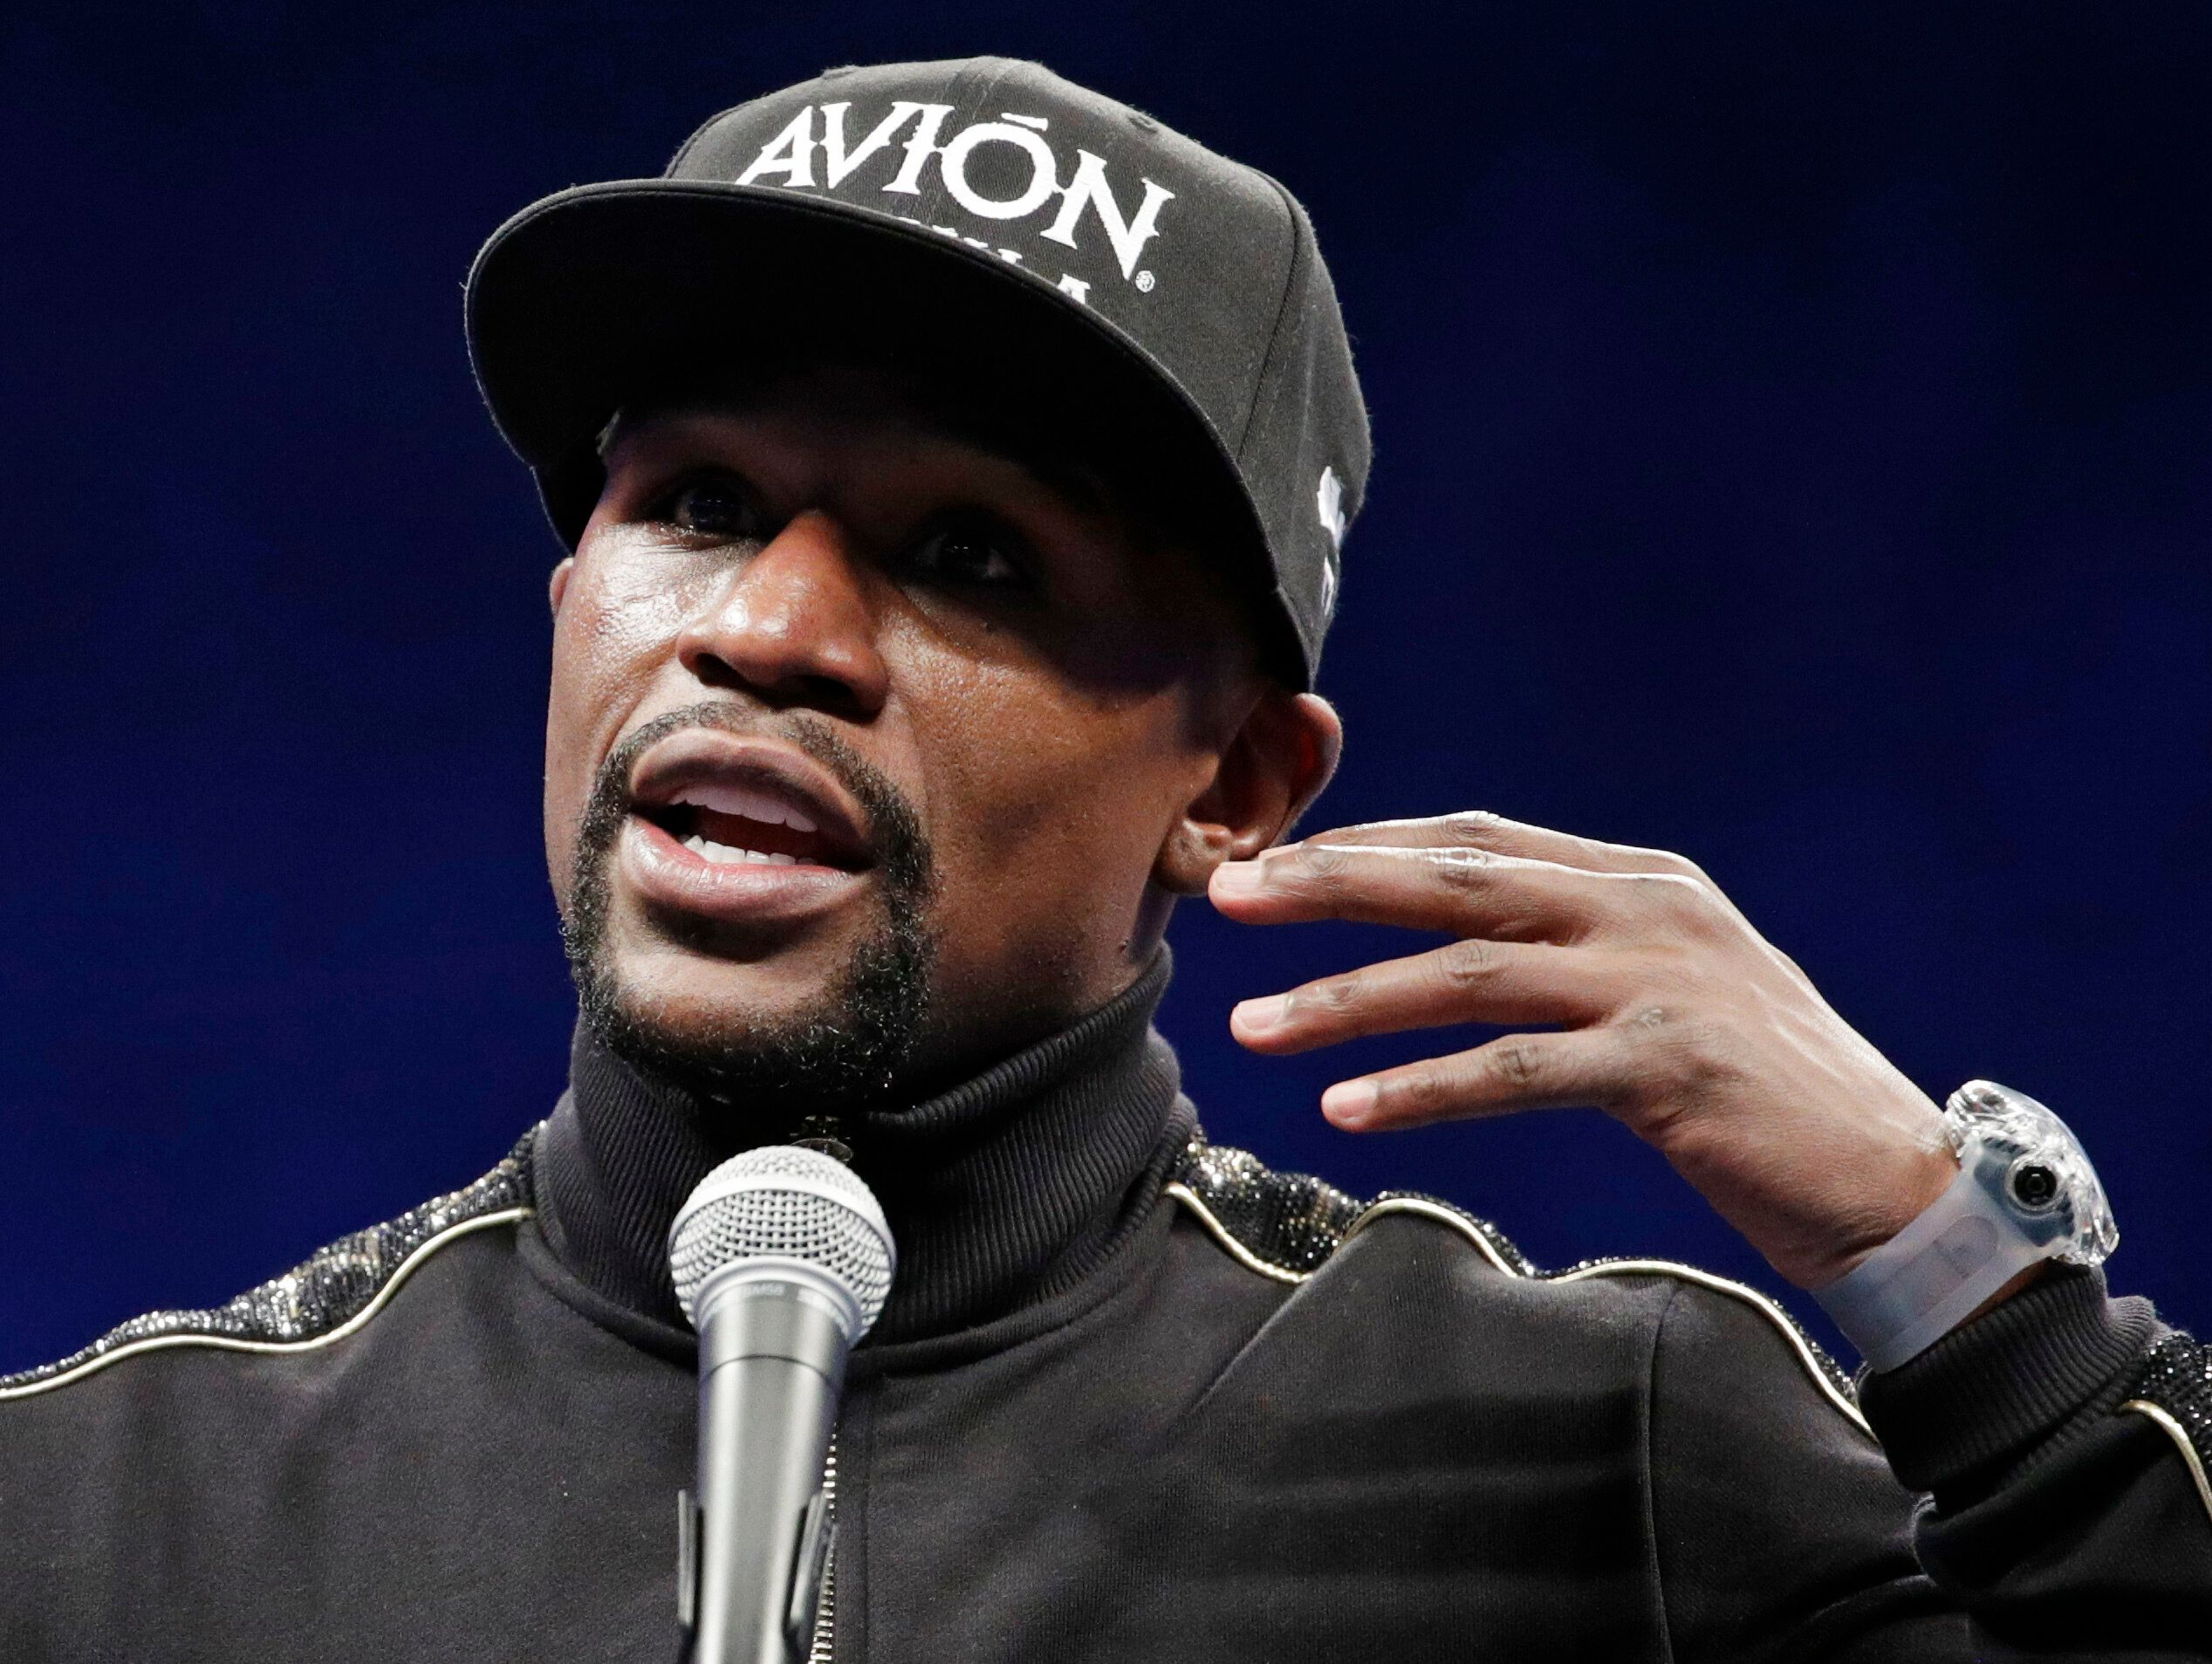 Floyd Mayweather Jr., seen in 2017,has offered to pay for Floyd'sfuneral and memorial services.